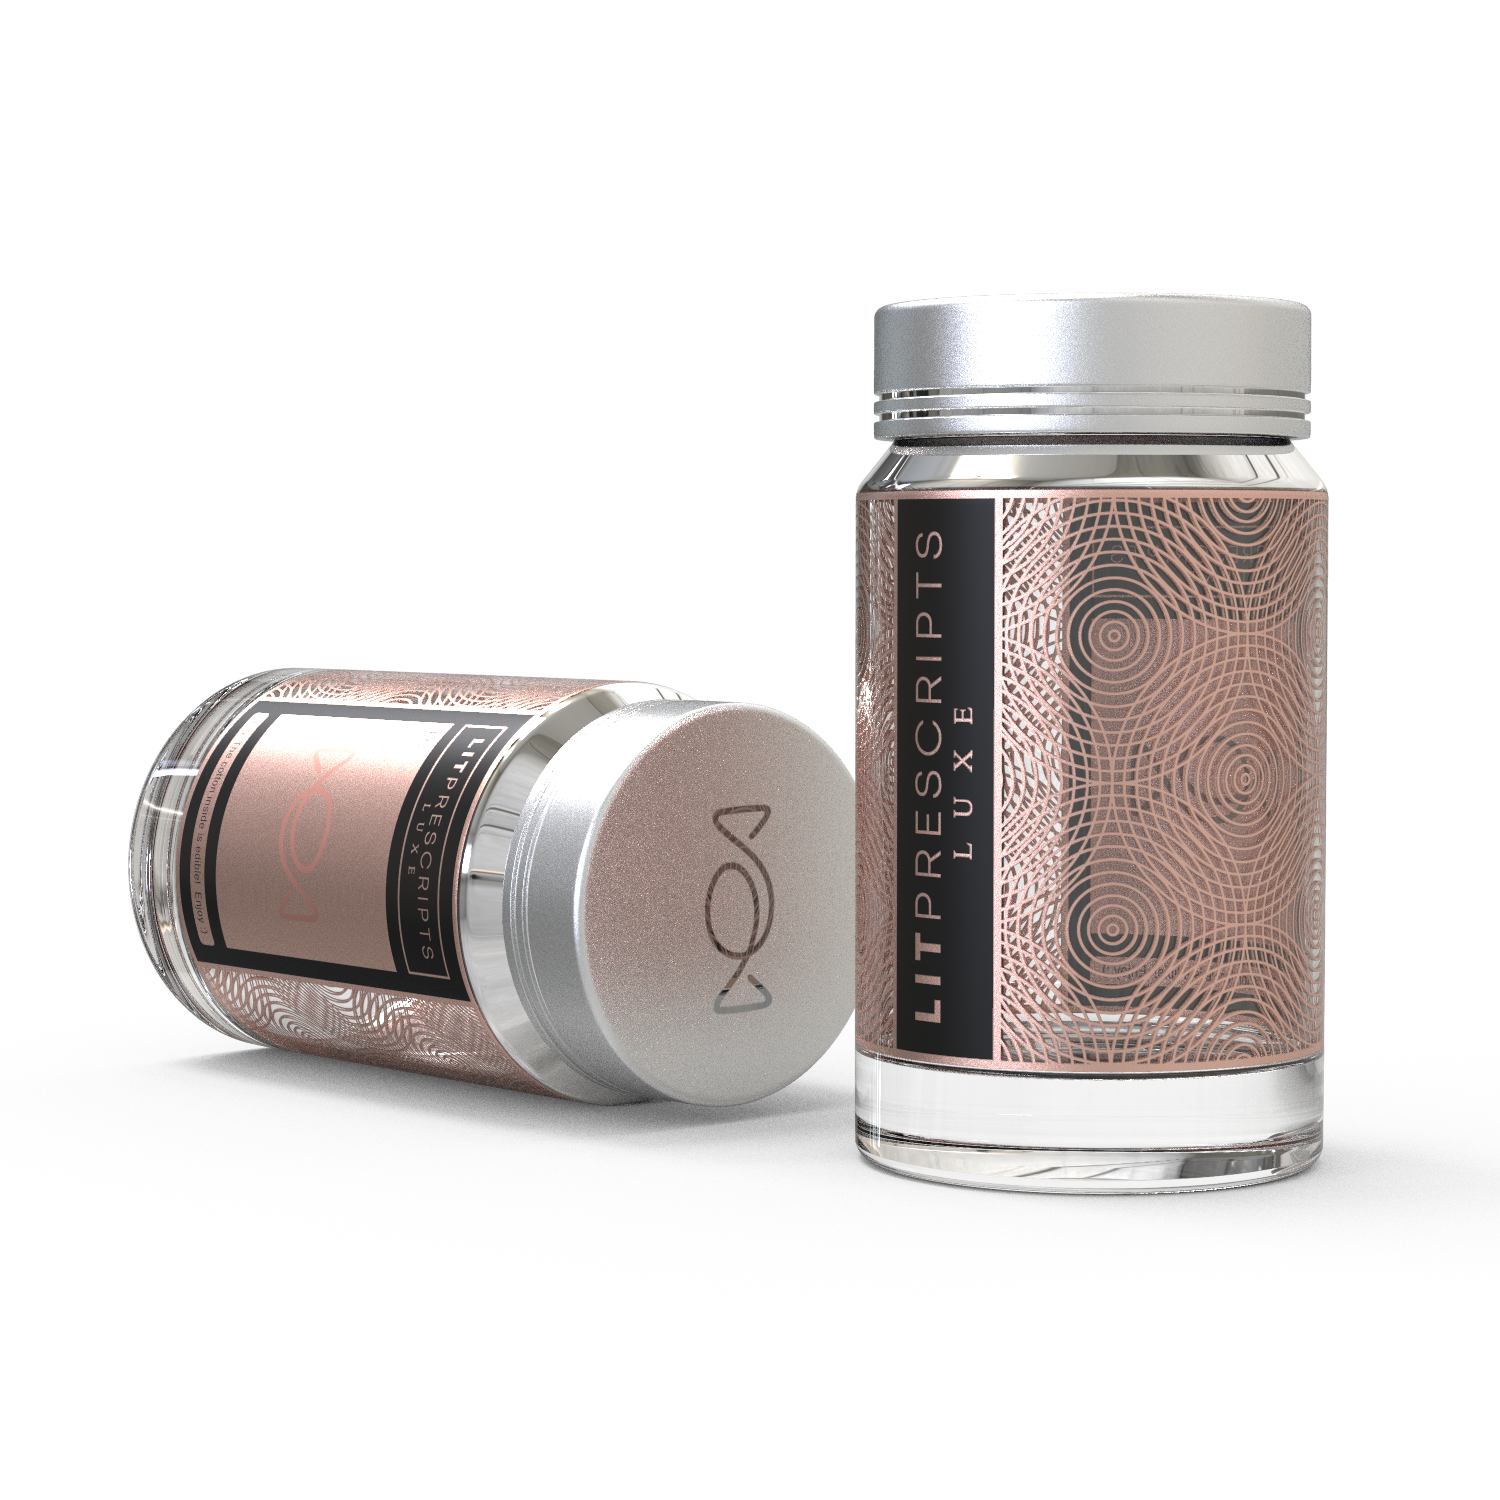 label desgn for luxury custom gifting service for Lit Prescripts